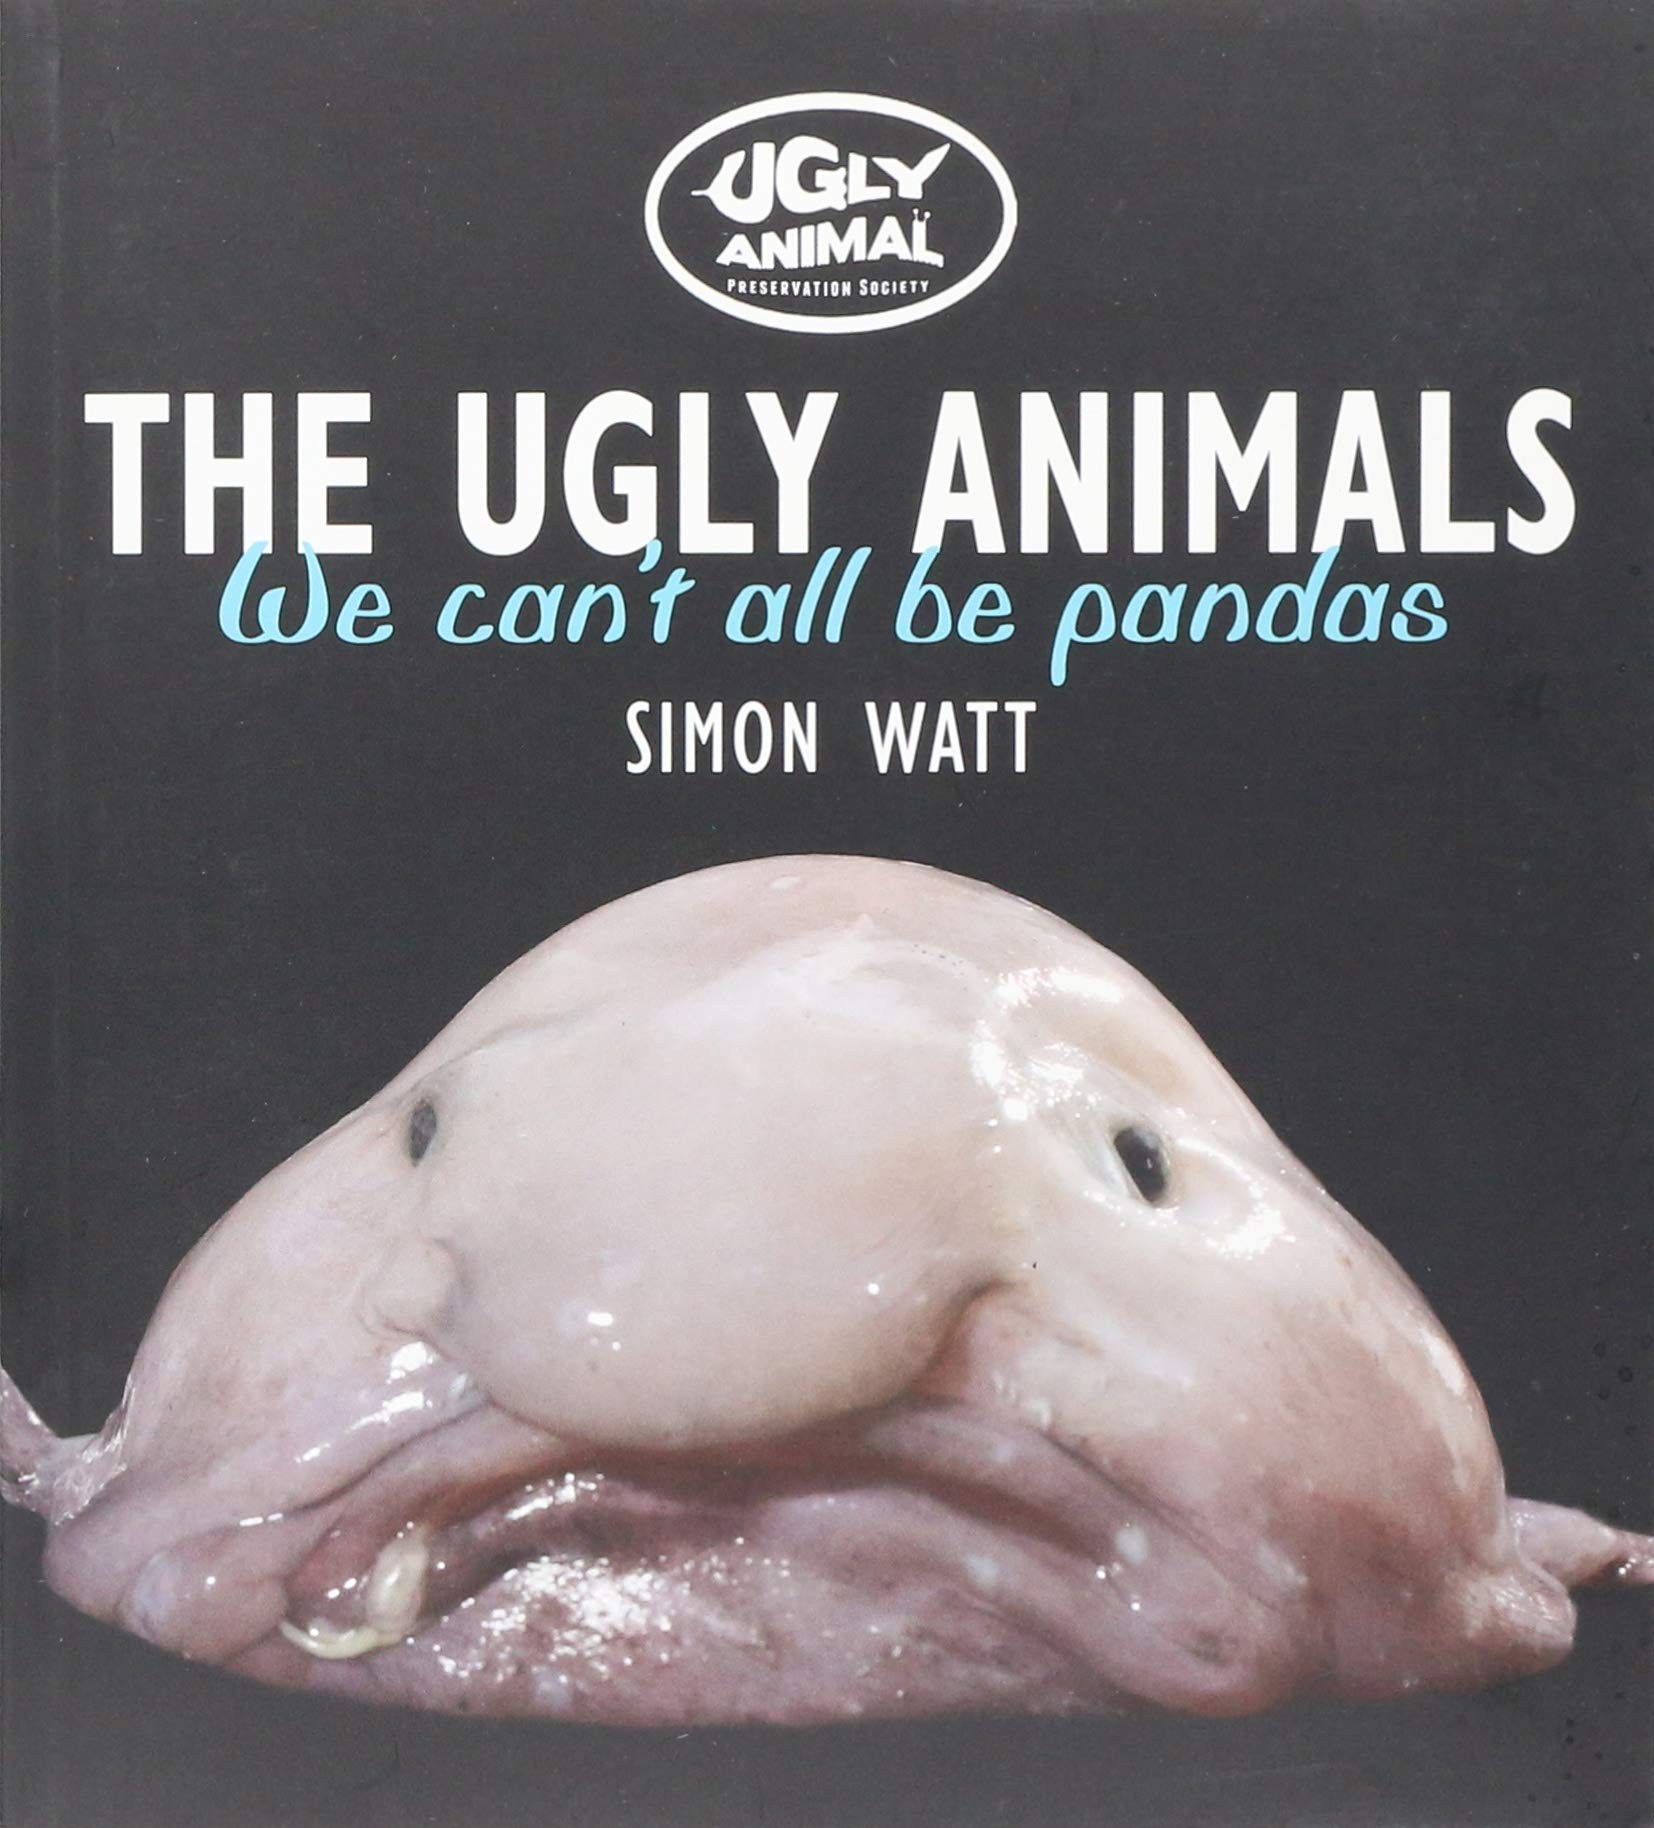 The Ugly Animals: We Can't All Be Pandas (Ugly Animal Perservation  Society): Watt, Simon: 9780750960588: Amazon.com: Books